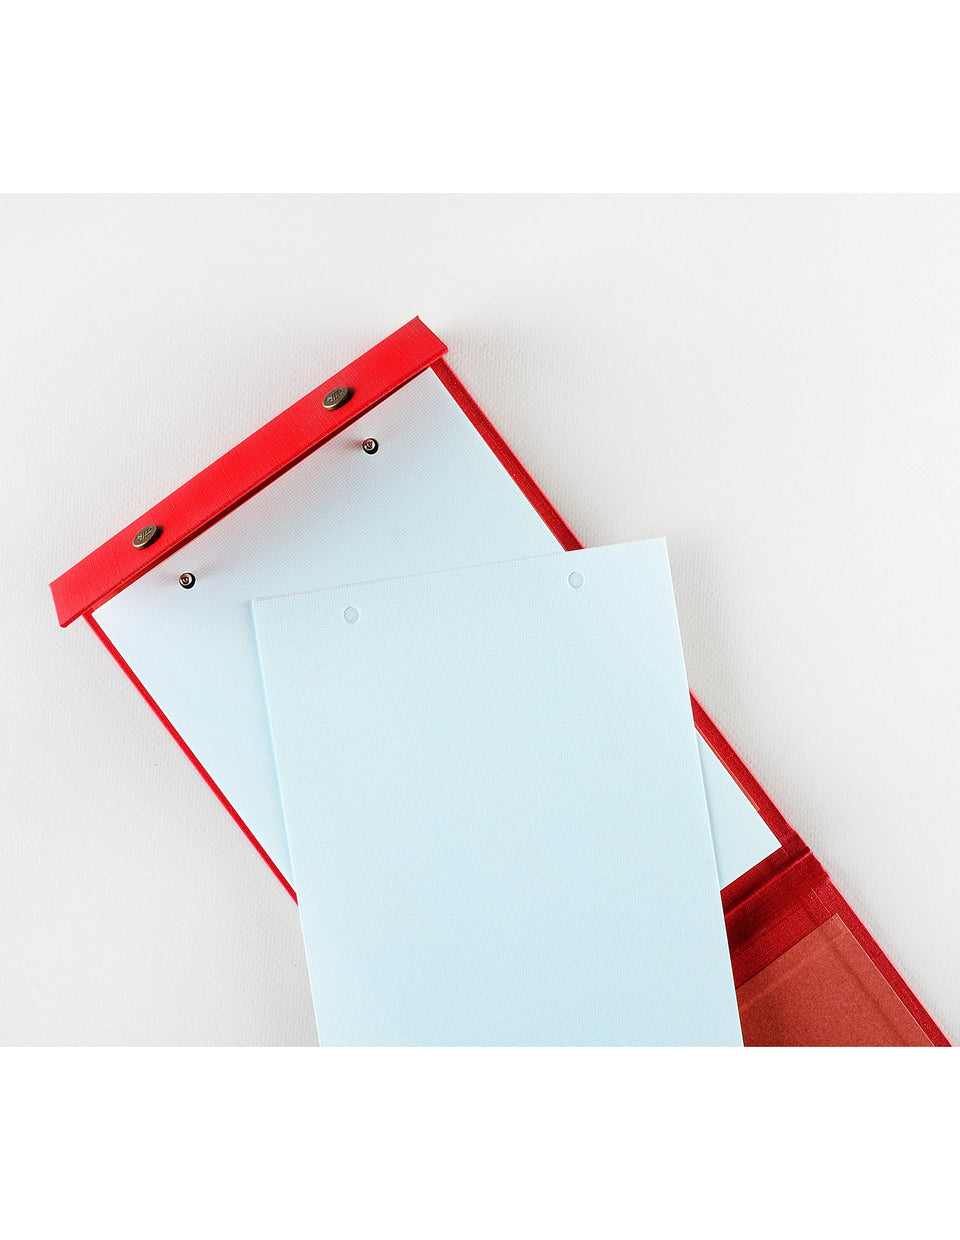 Postalco Postalco Snap Pad SQ Signal Red & Refills | A5 or A4